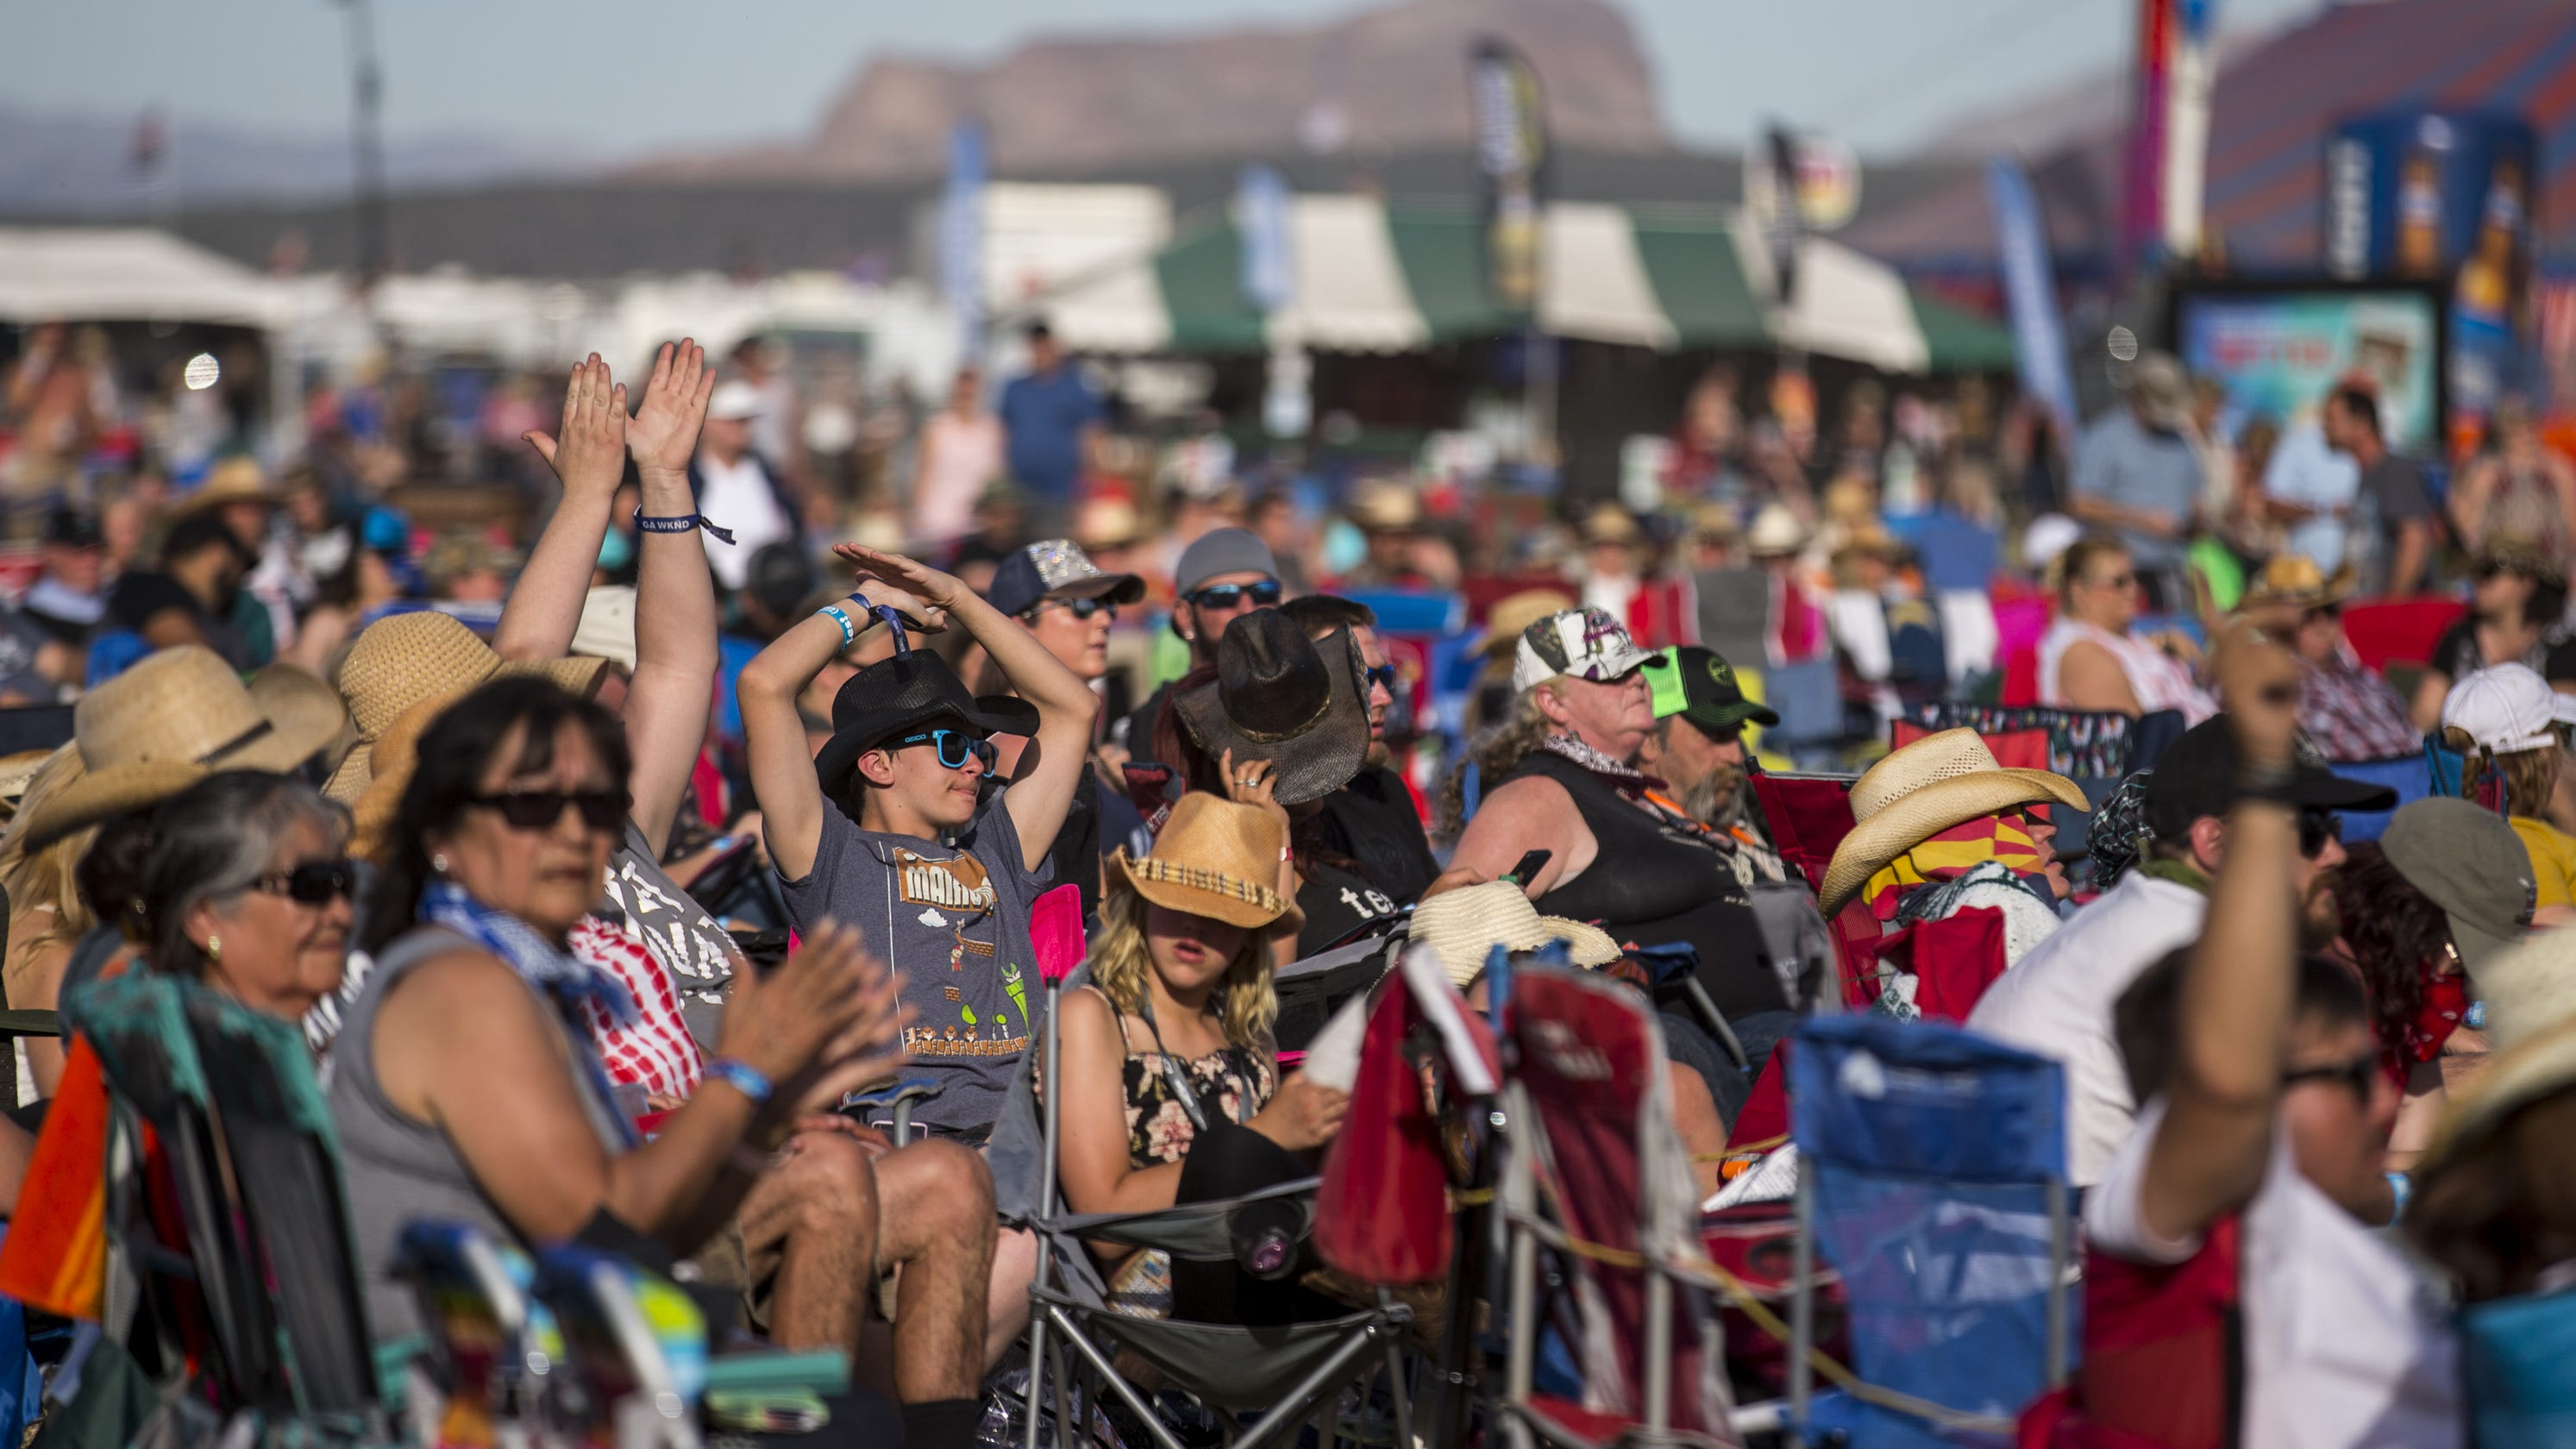 What a first-timer thought of Country Thunder 2019 in Florence